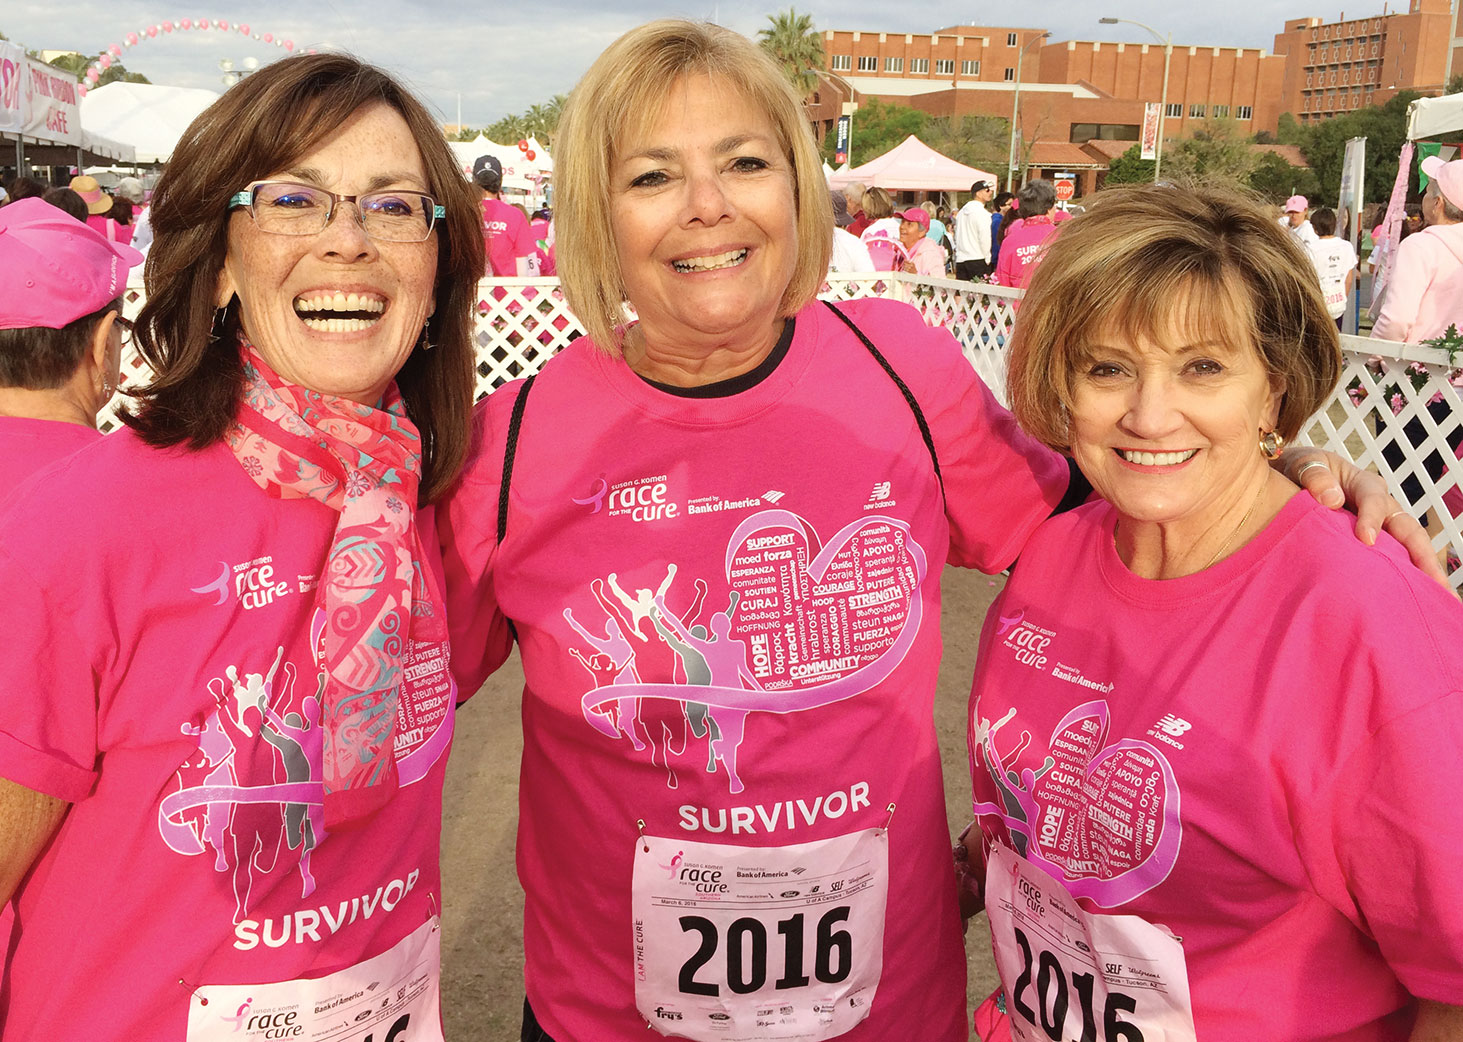 Cancer survivors, left to right: Corine Sturdivant, Sandy Jessop and Lee Rinke